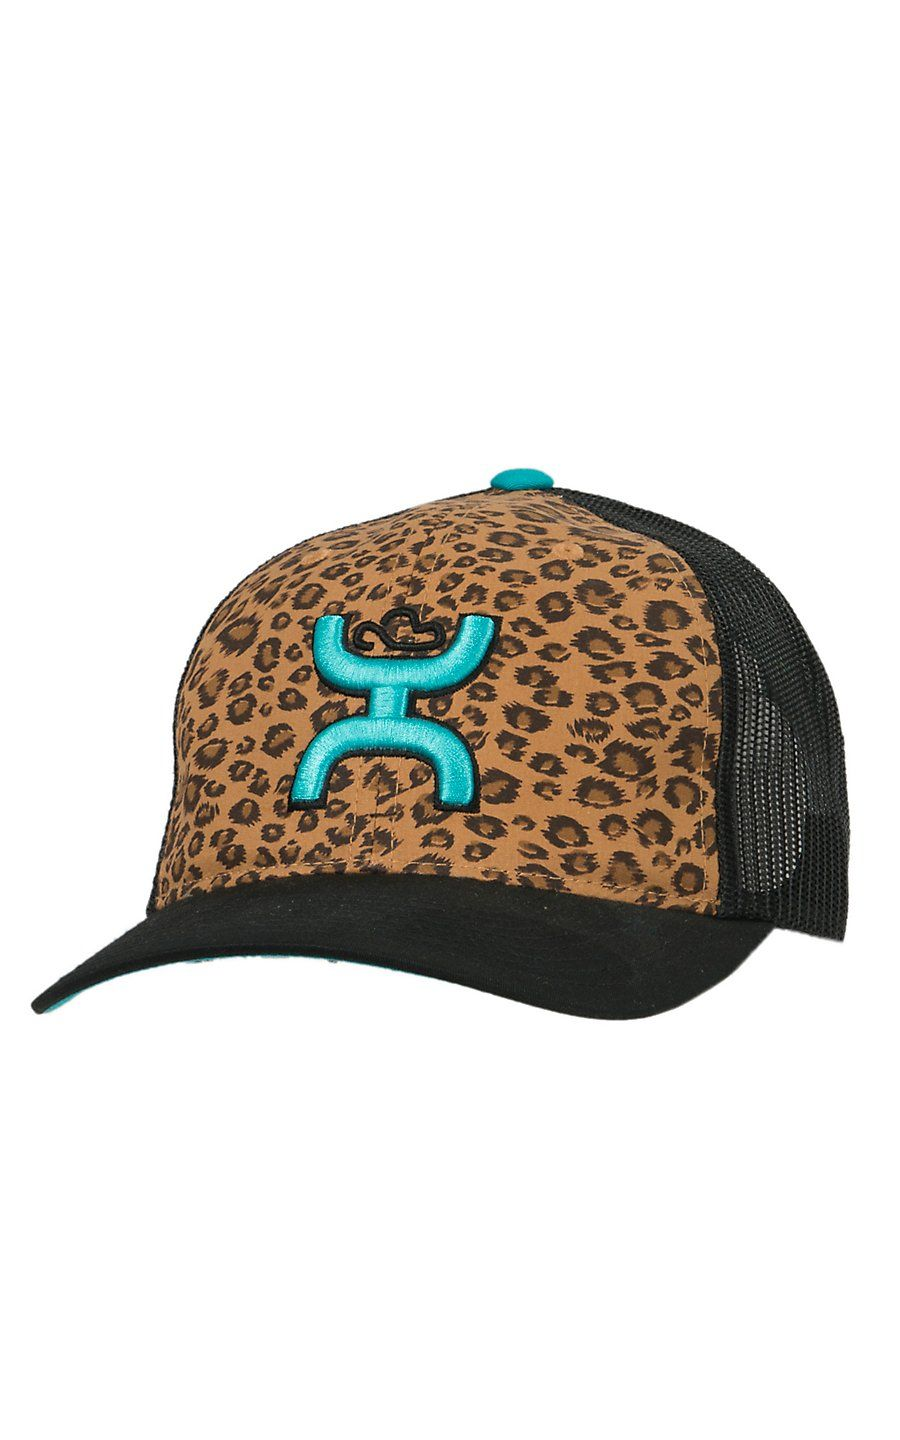 HOOey Leopard with Turquoise Hands Up Logo Black Mesh Back Cap ... ba999e4295a1